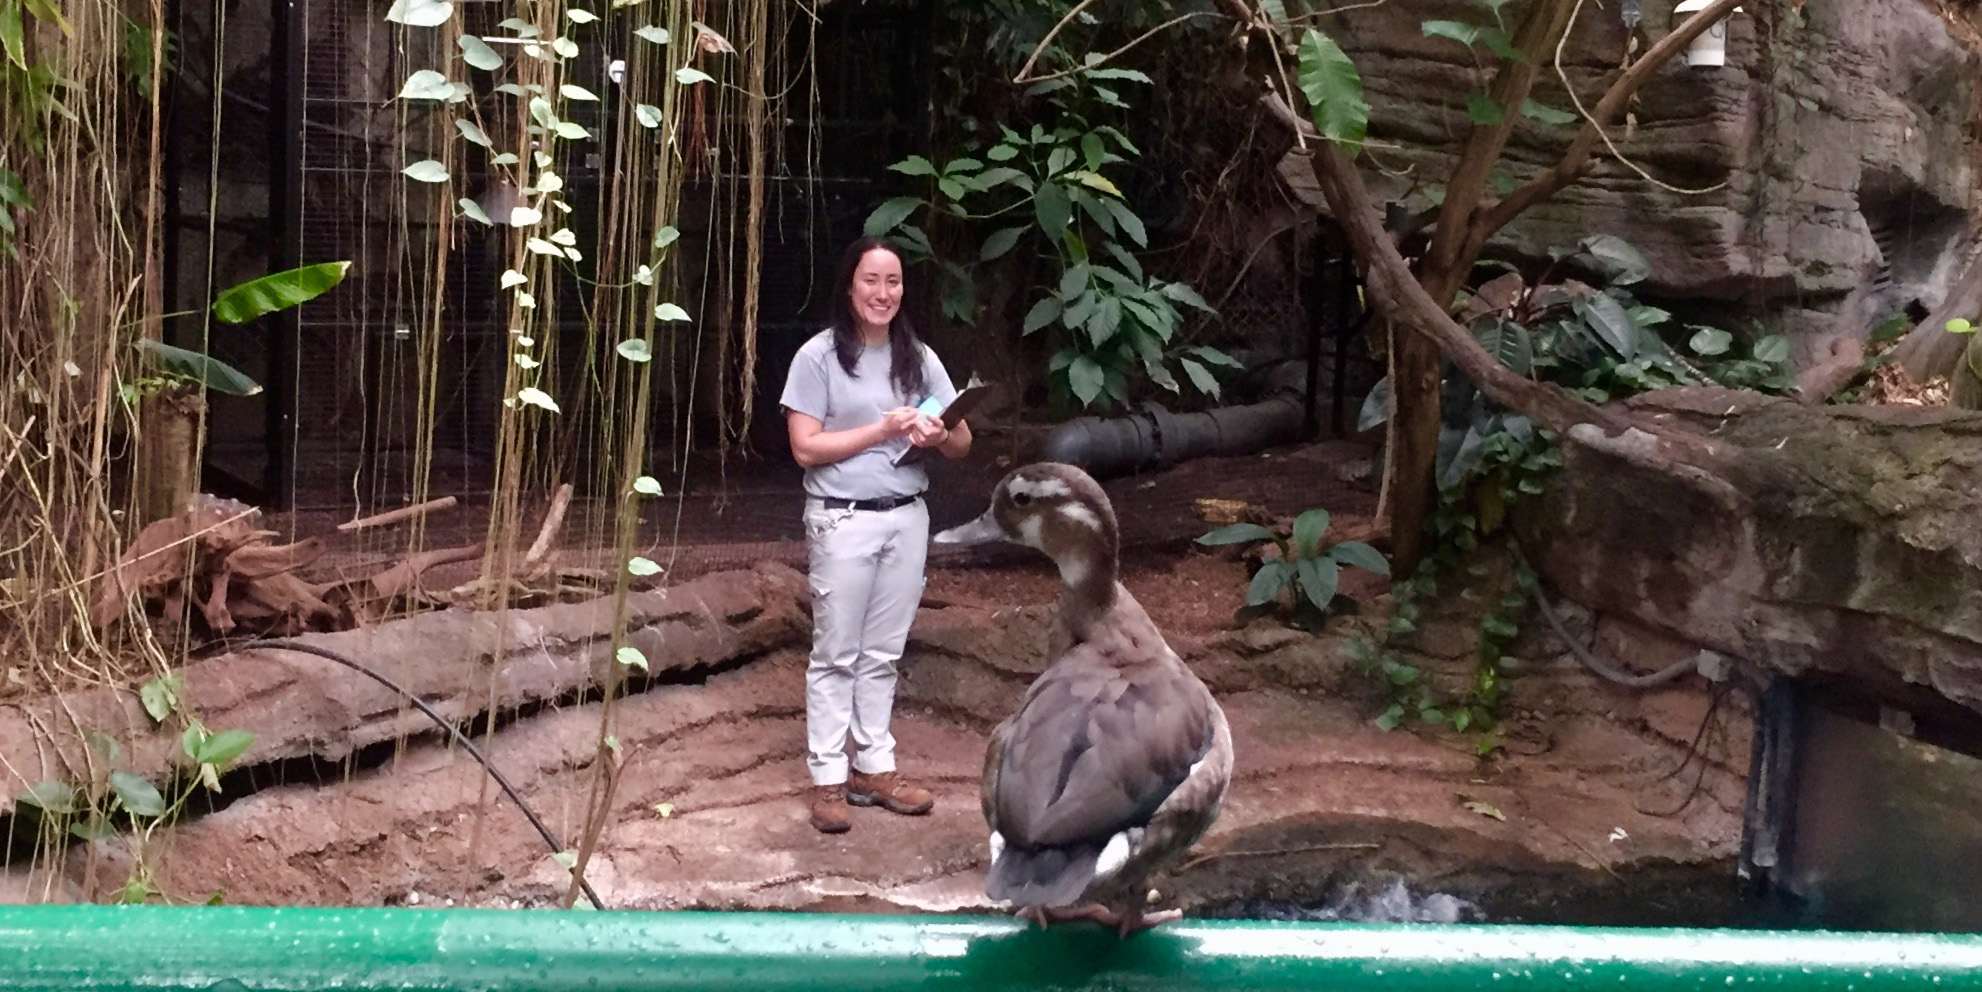 Amazonia keeper Hilary Colton recall trains the 13 free-flighted birds in the exhibit.